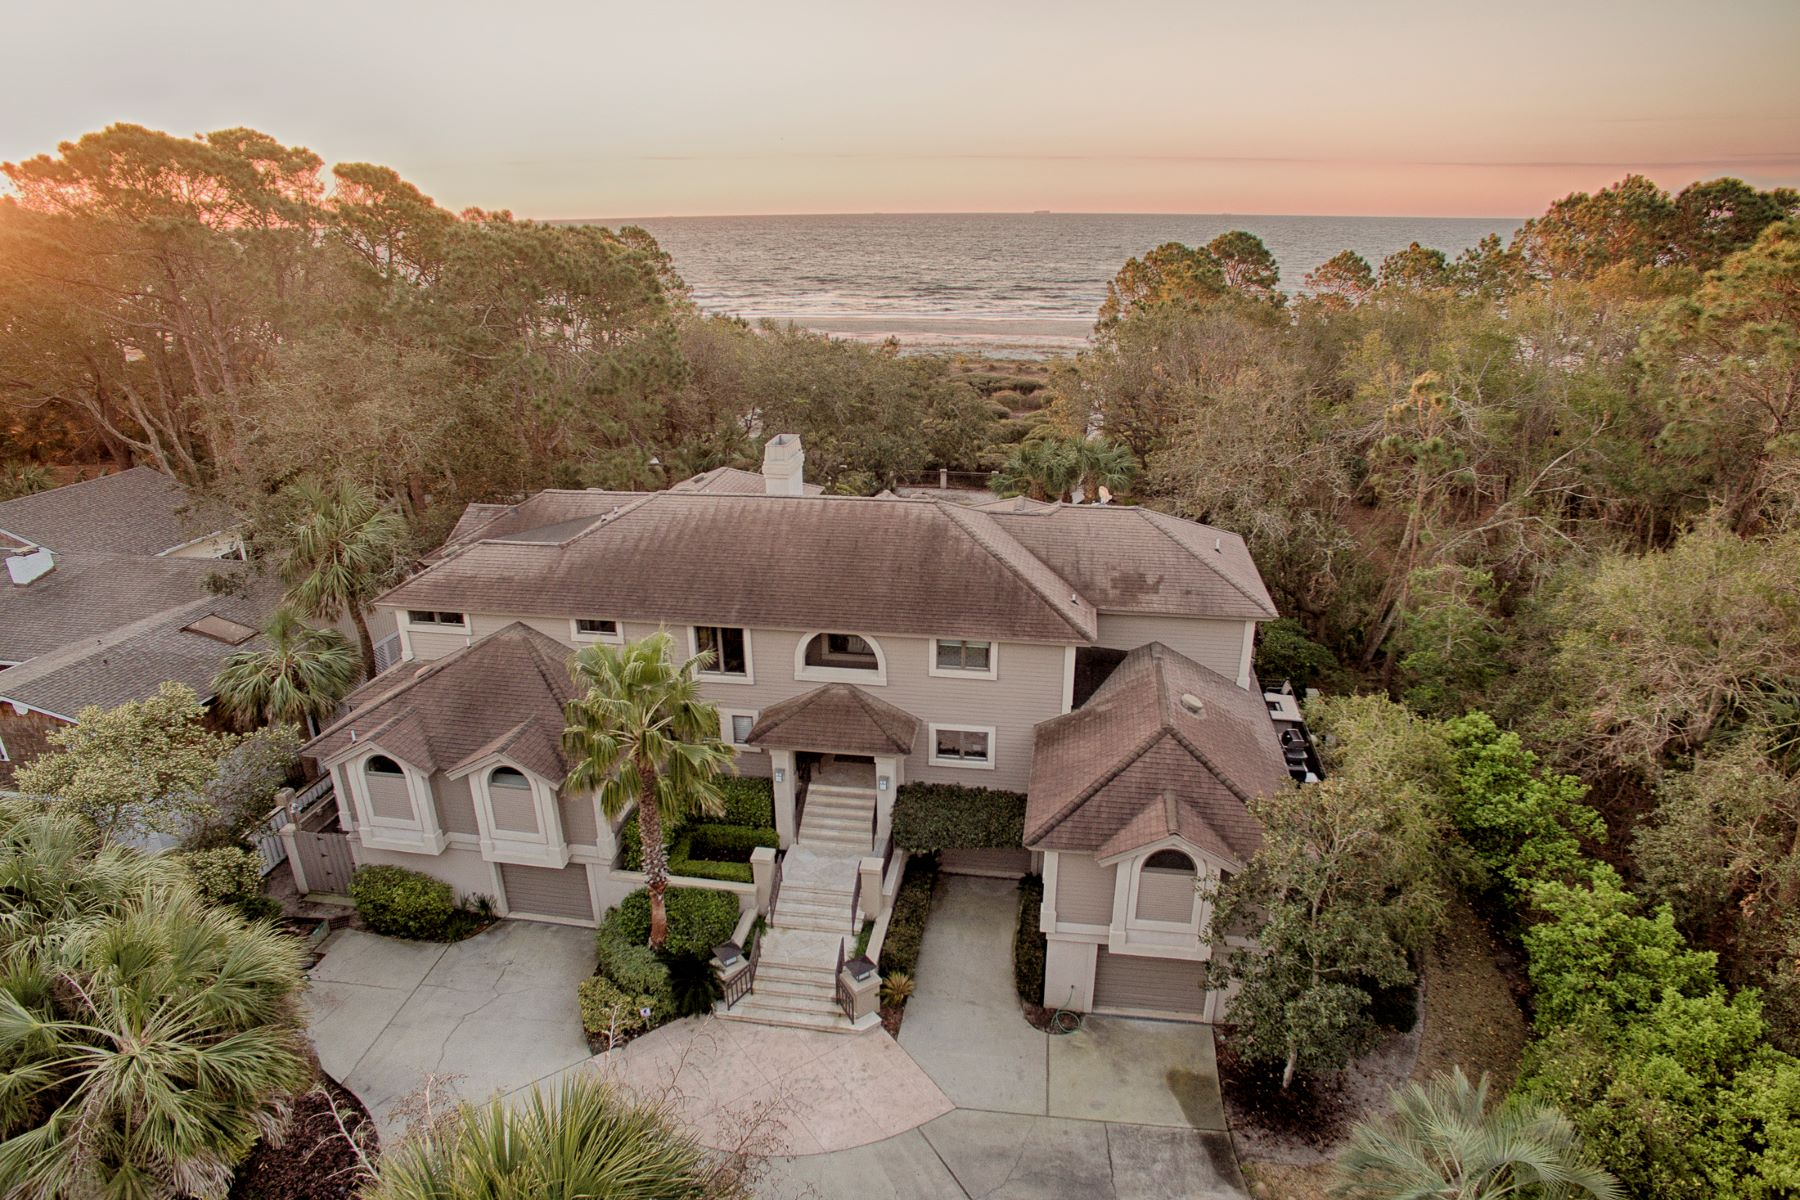 Single Family Home for Sale at 20/23 Sea Oak Lane Hilton Head Island, South Carolina 29928 United States